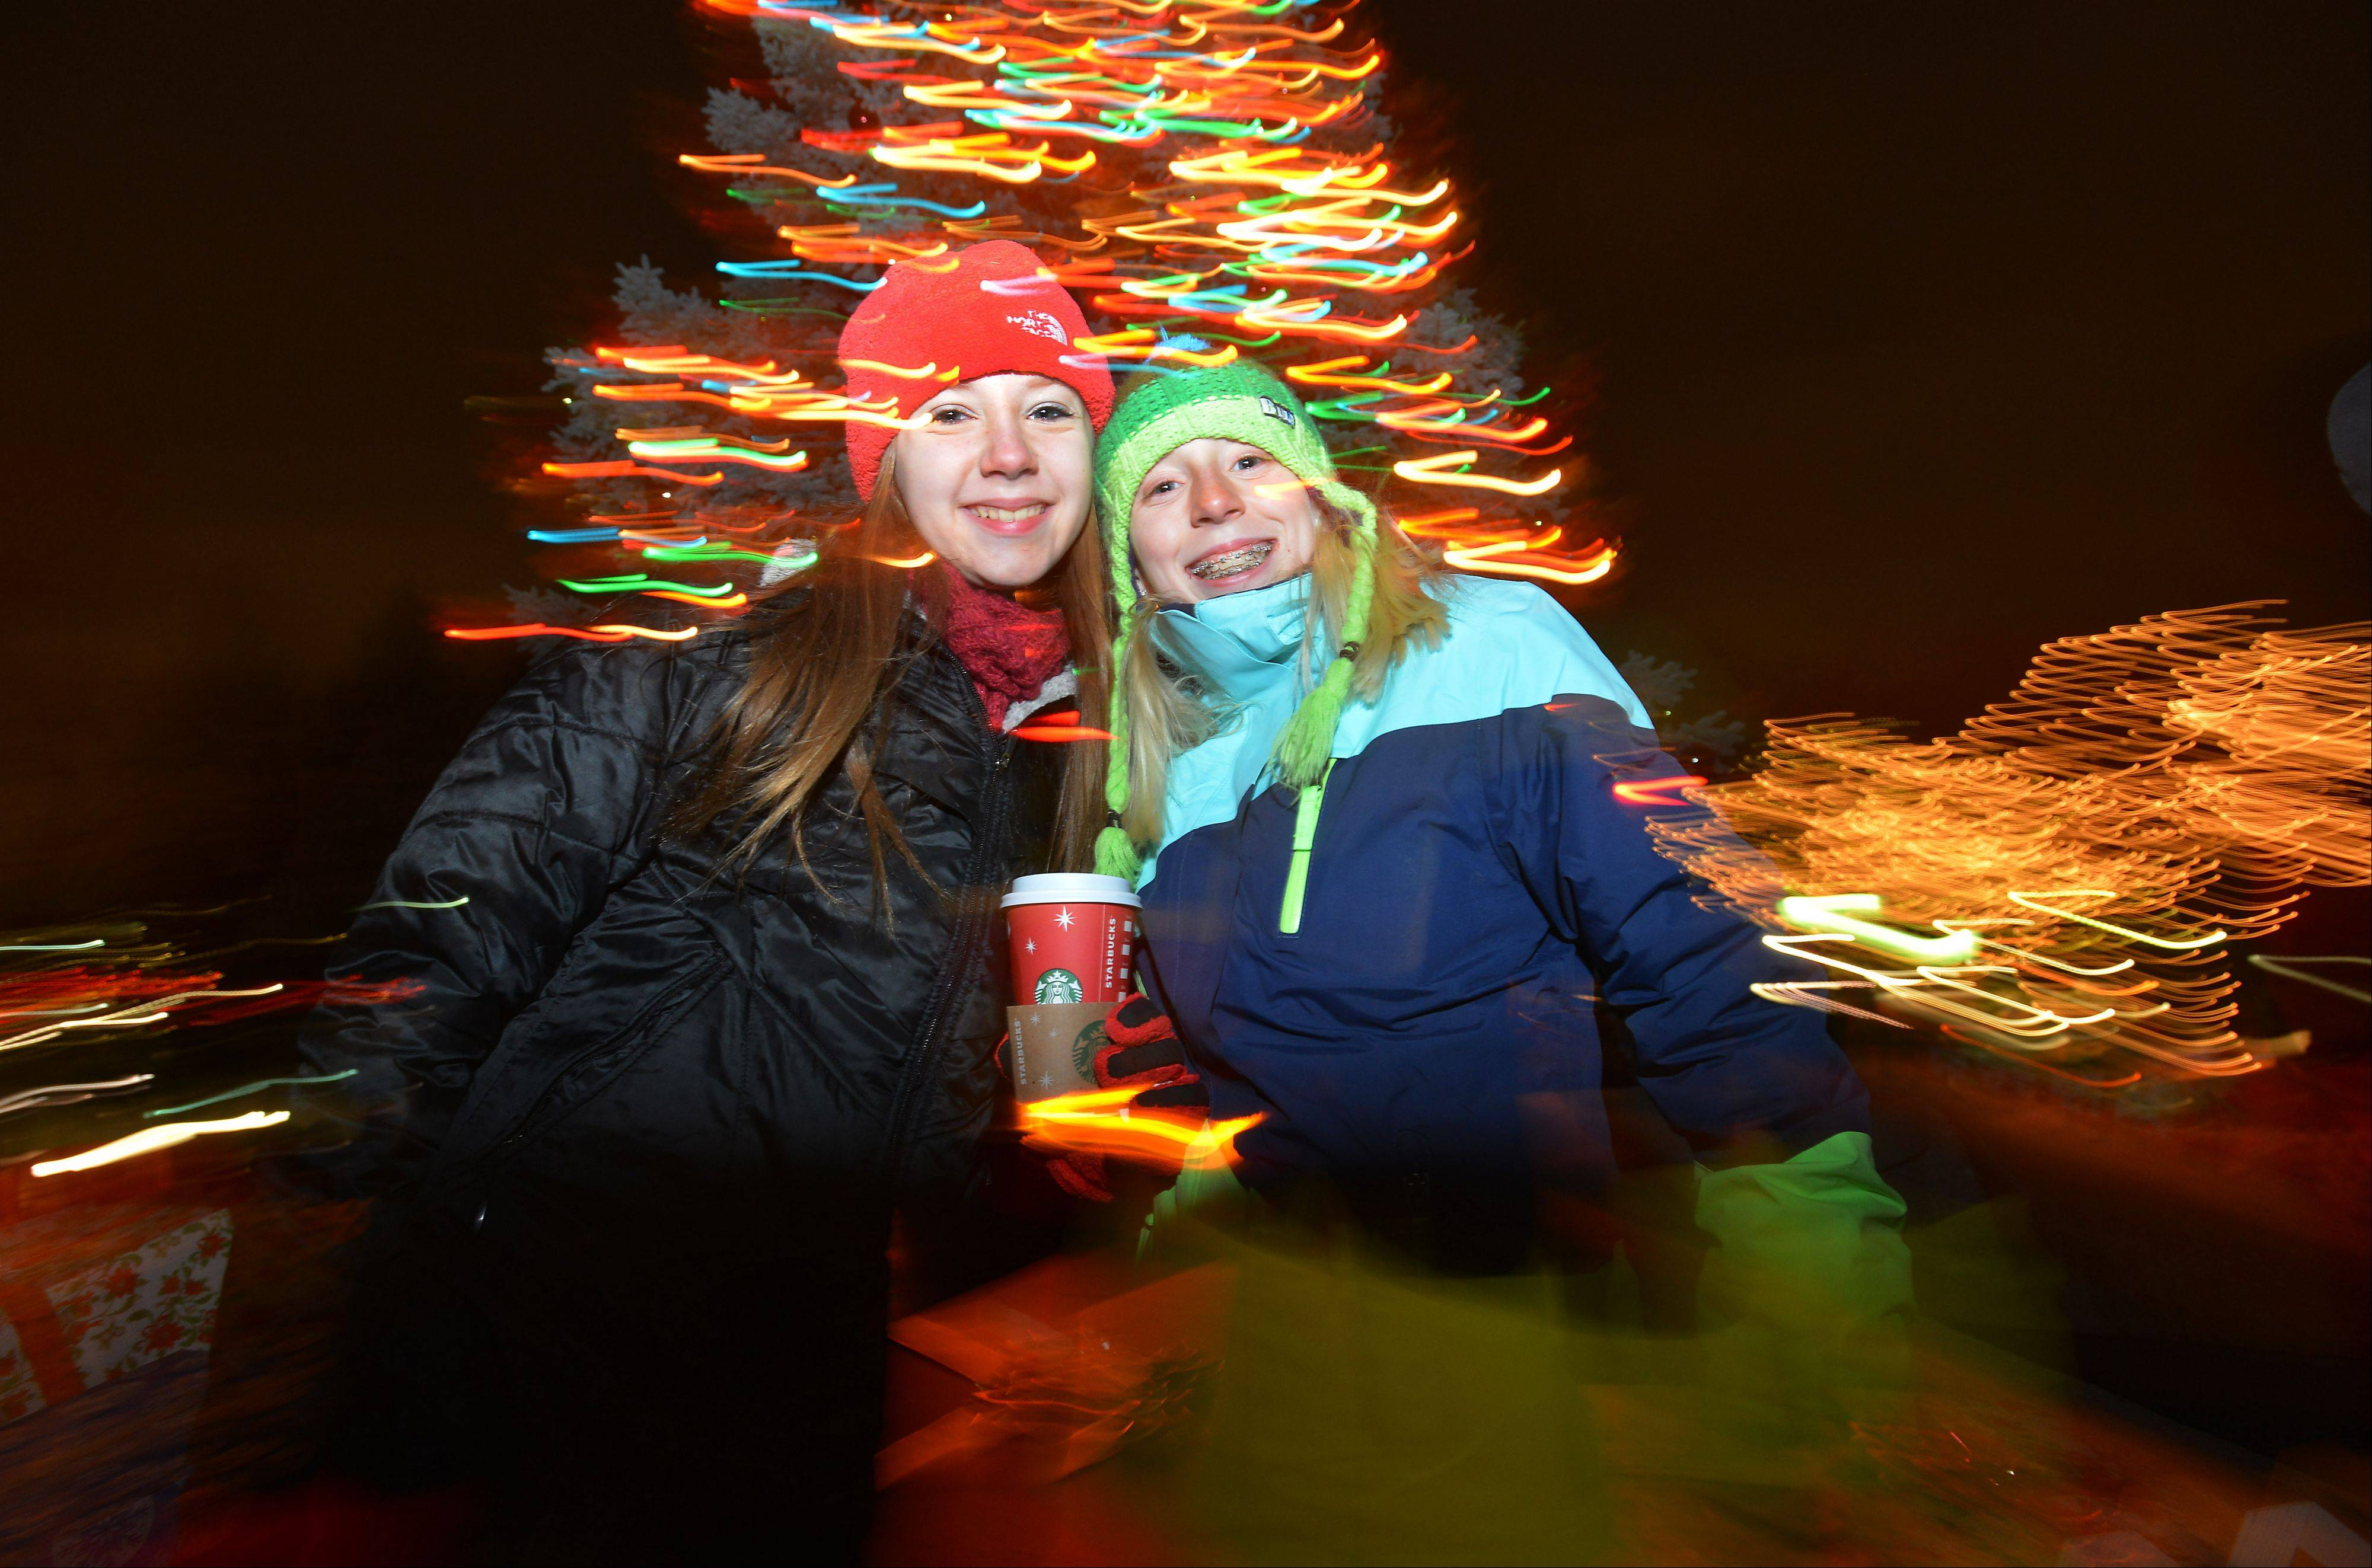 Arlington Heights' Christmas lights were turned on Friday night, and Elisabeth Jaszka and Grace Kozurek, both 13, were right in the thick of things.